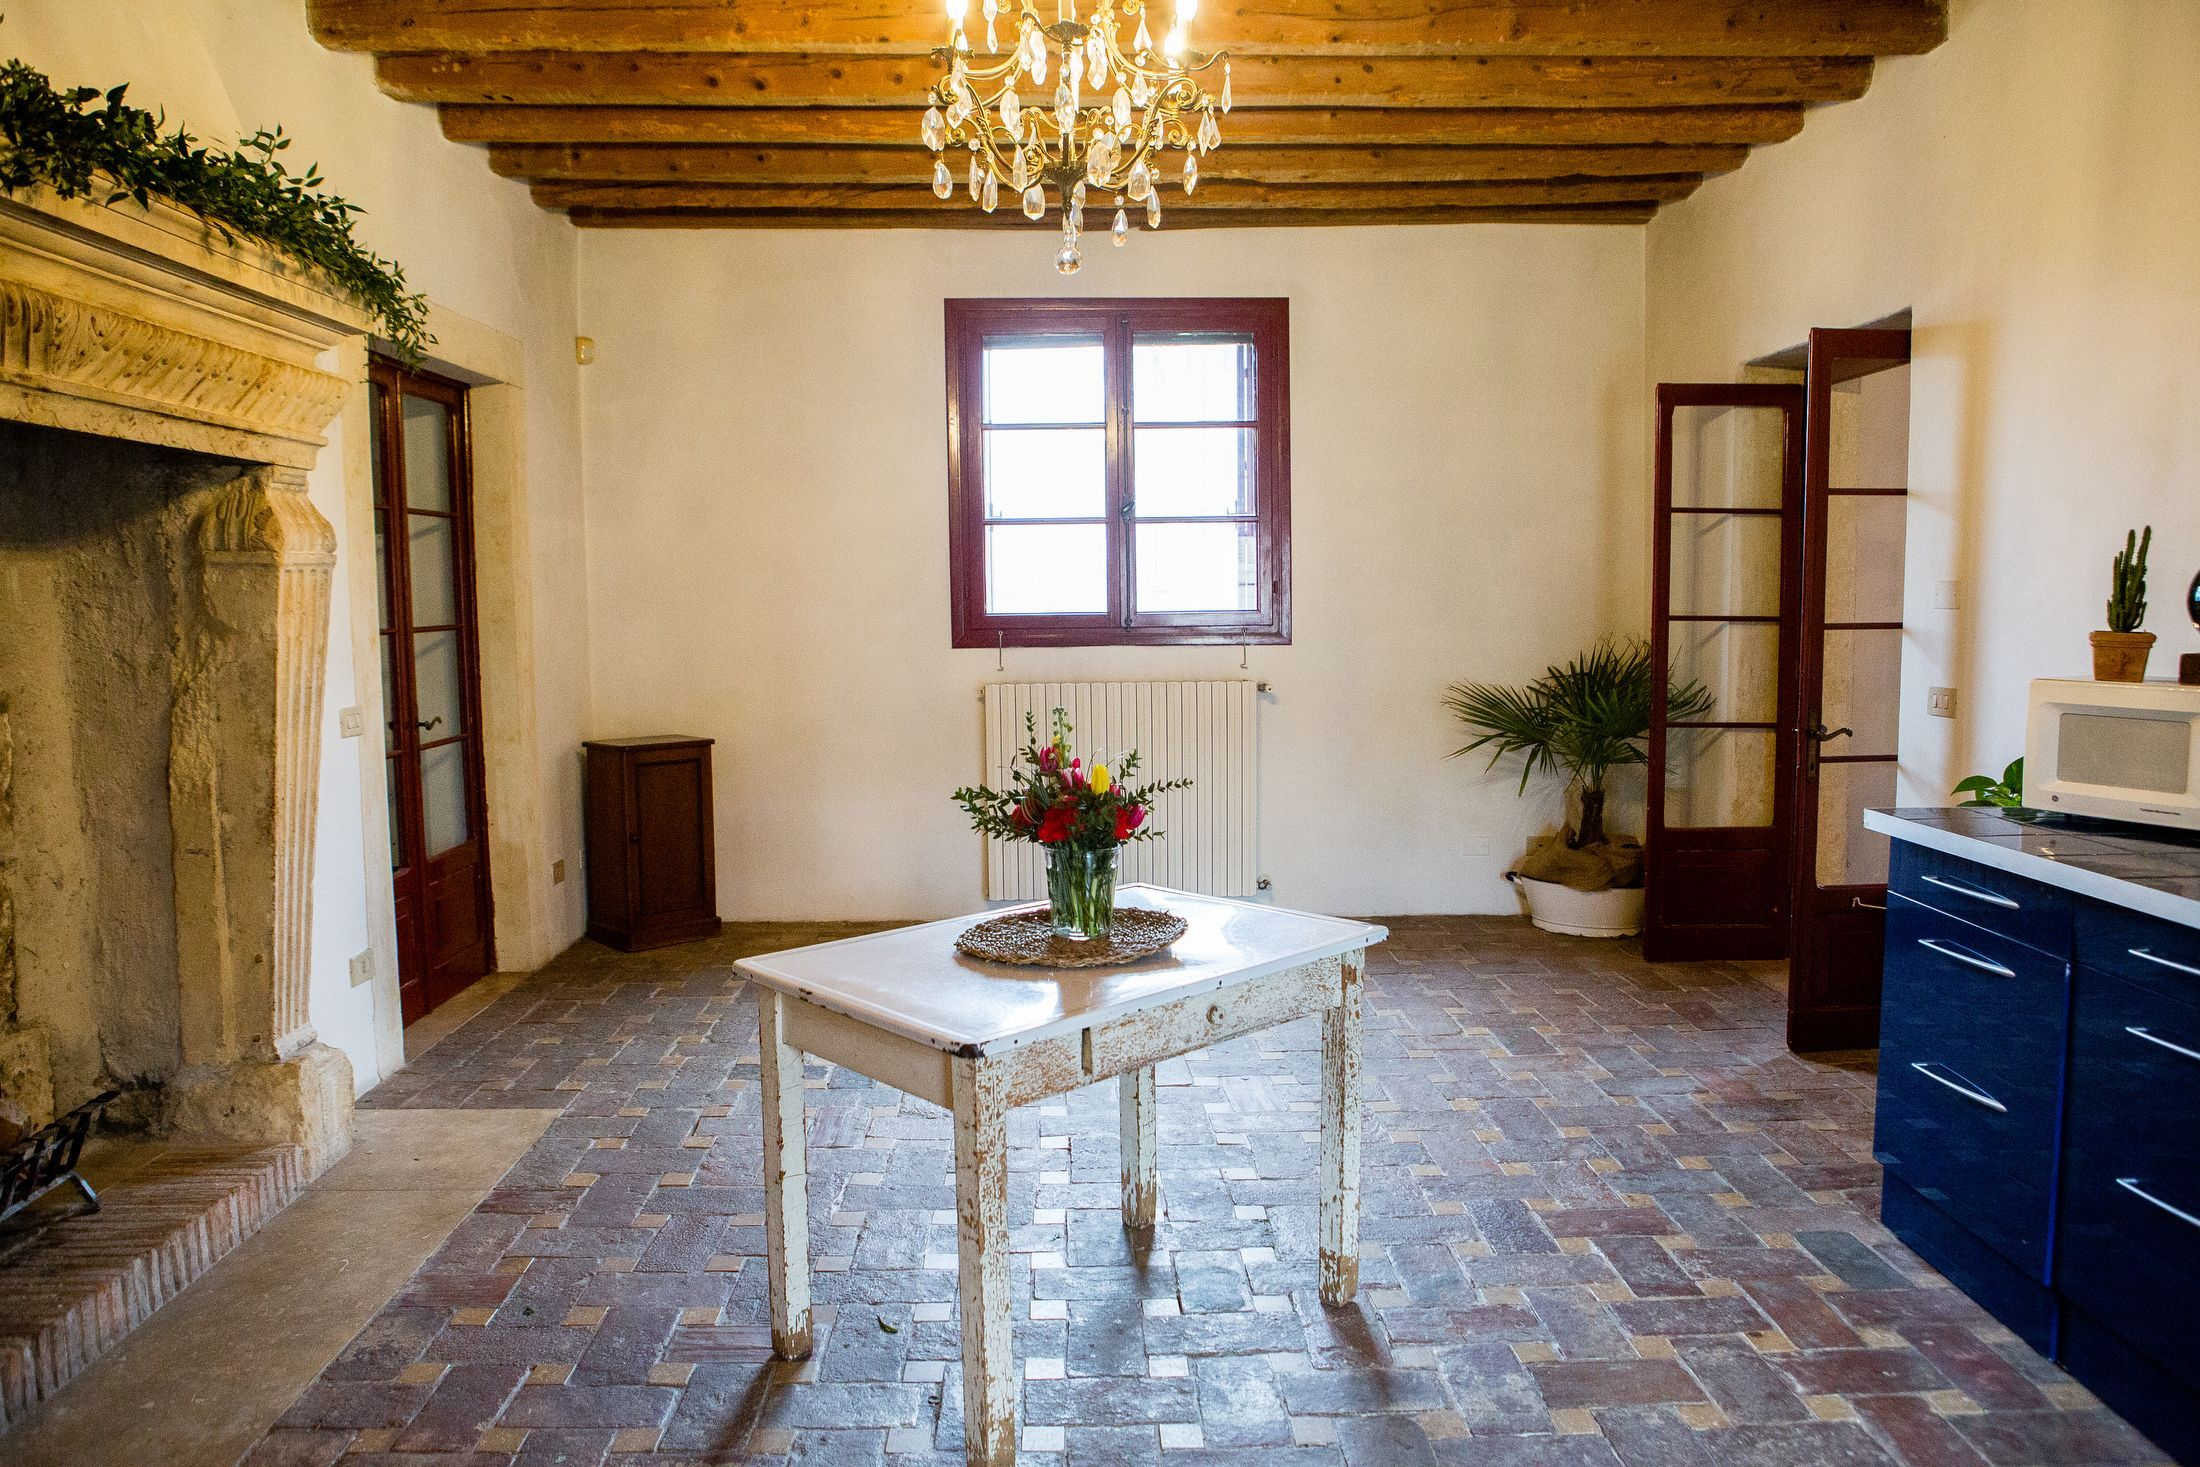 An Insanely Dreamy Rental Apartment In A Converted Stable In A 14th Century Italian Villa Italian Villa Rental Apartments Apartment